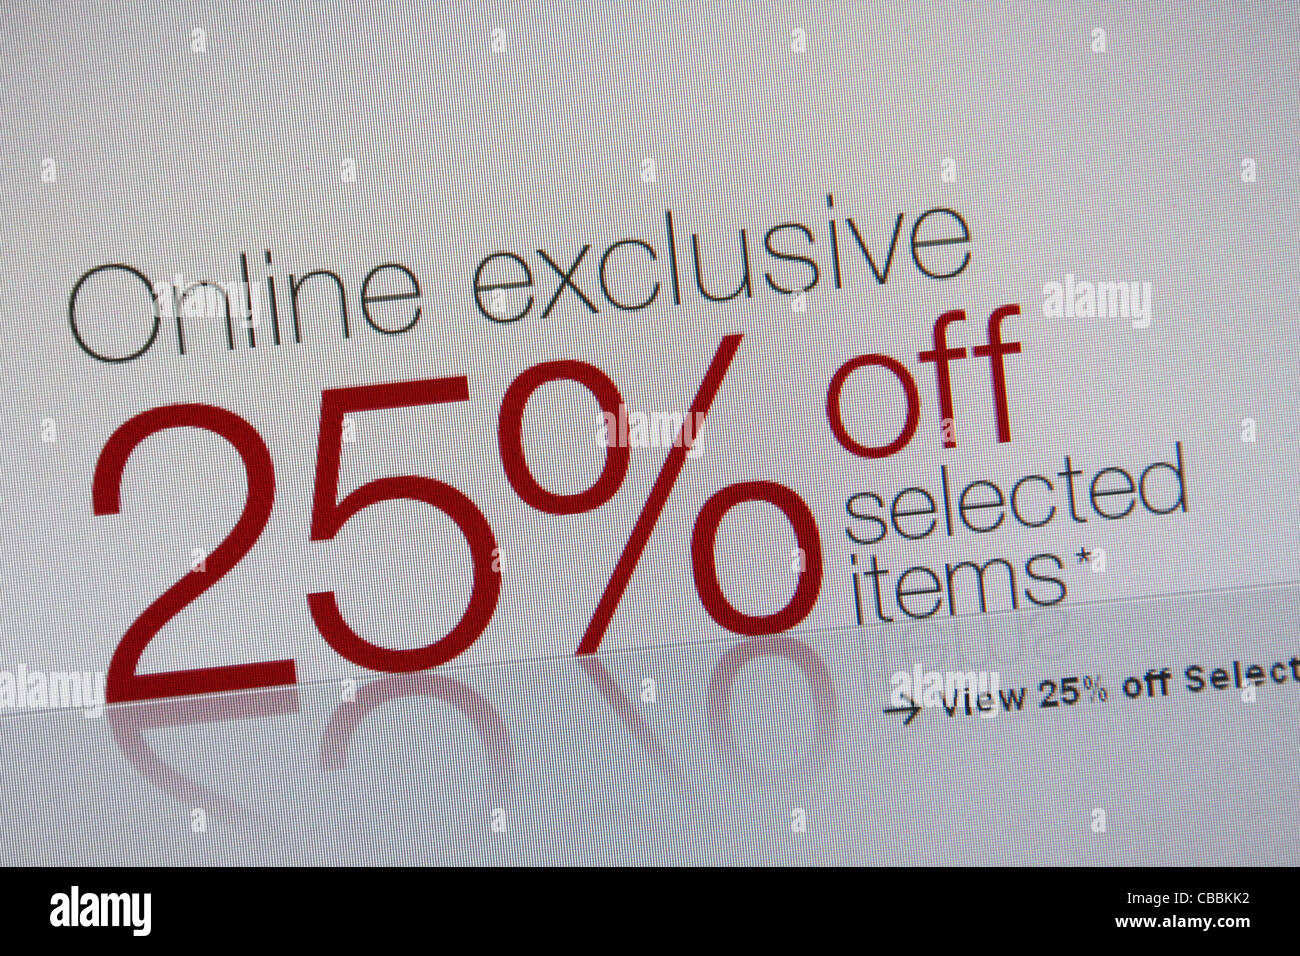 online shopping discount 25% off - Stock Image